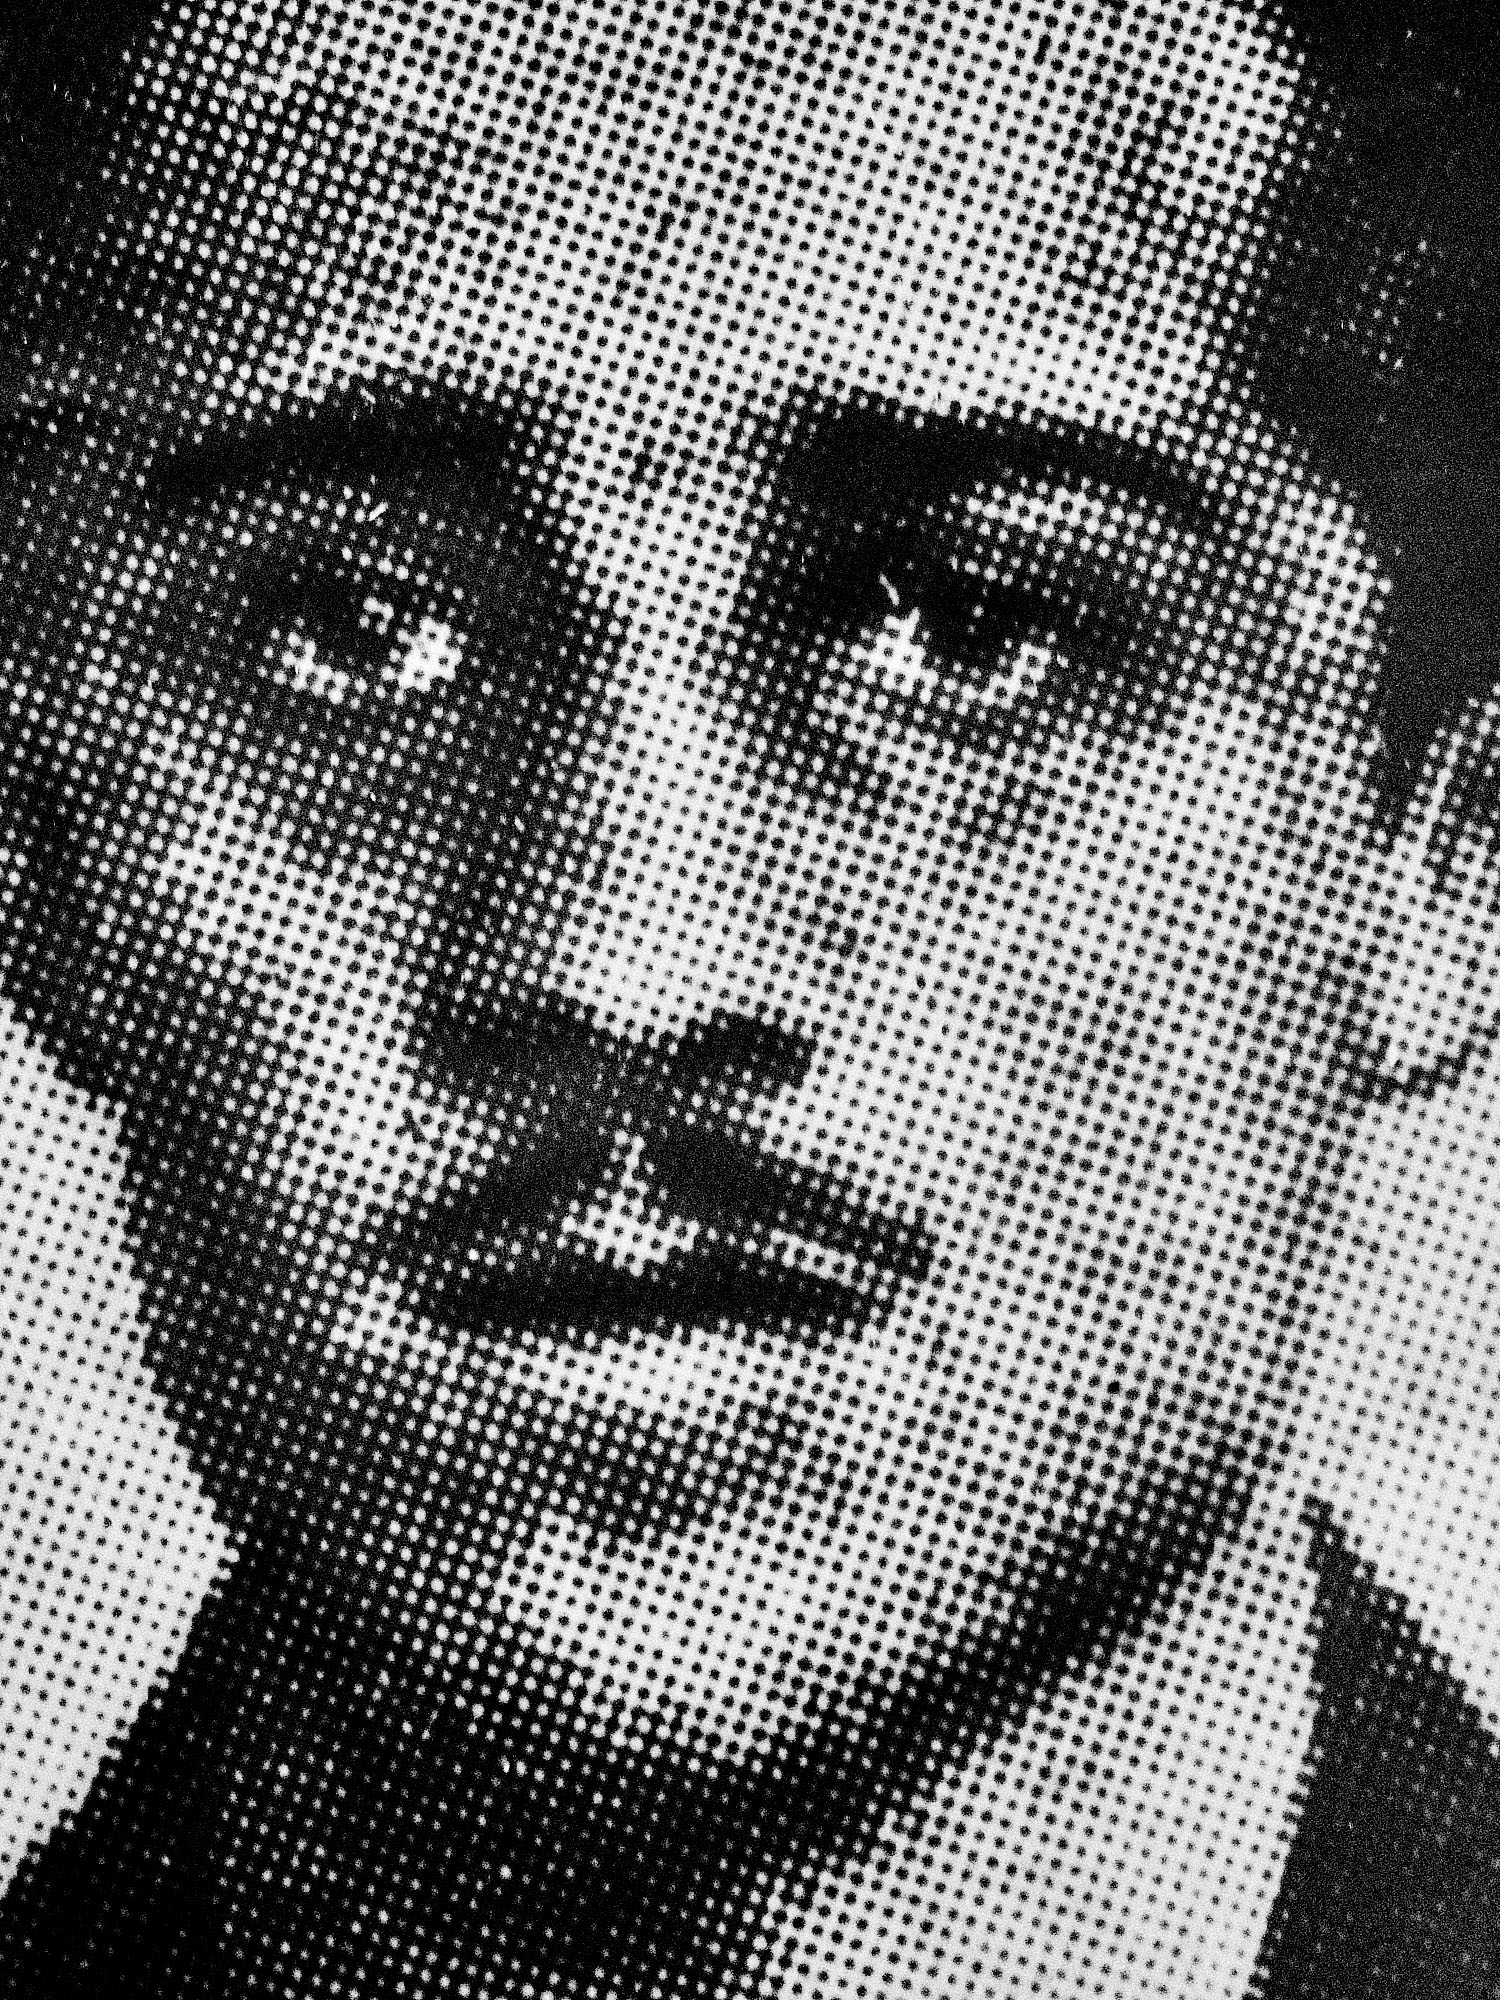 Gavrilo Princip, the Bosnian-Serb whose actions triggered a chain of events leading to First World War